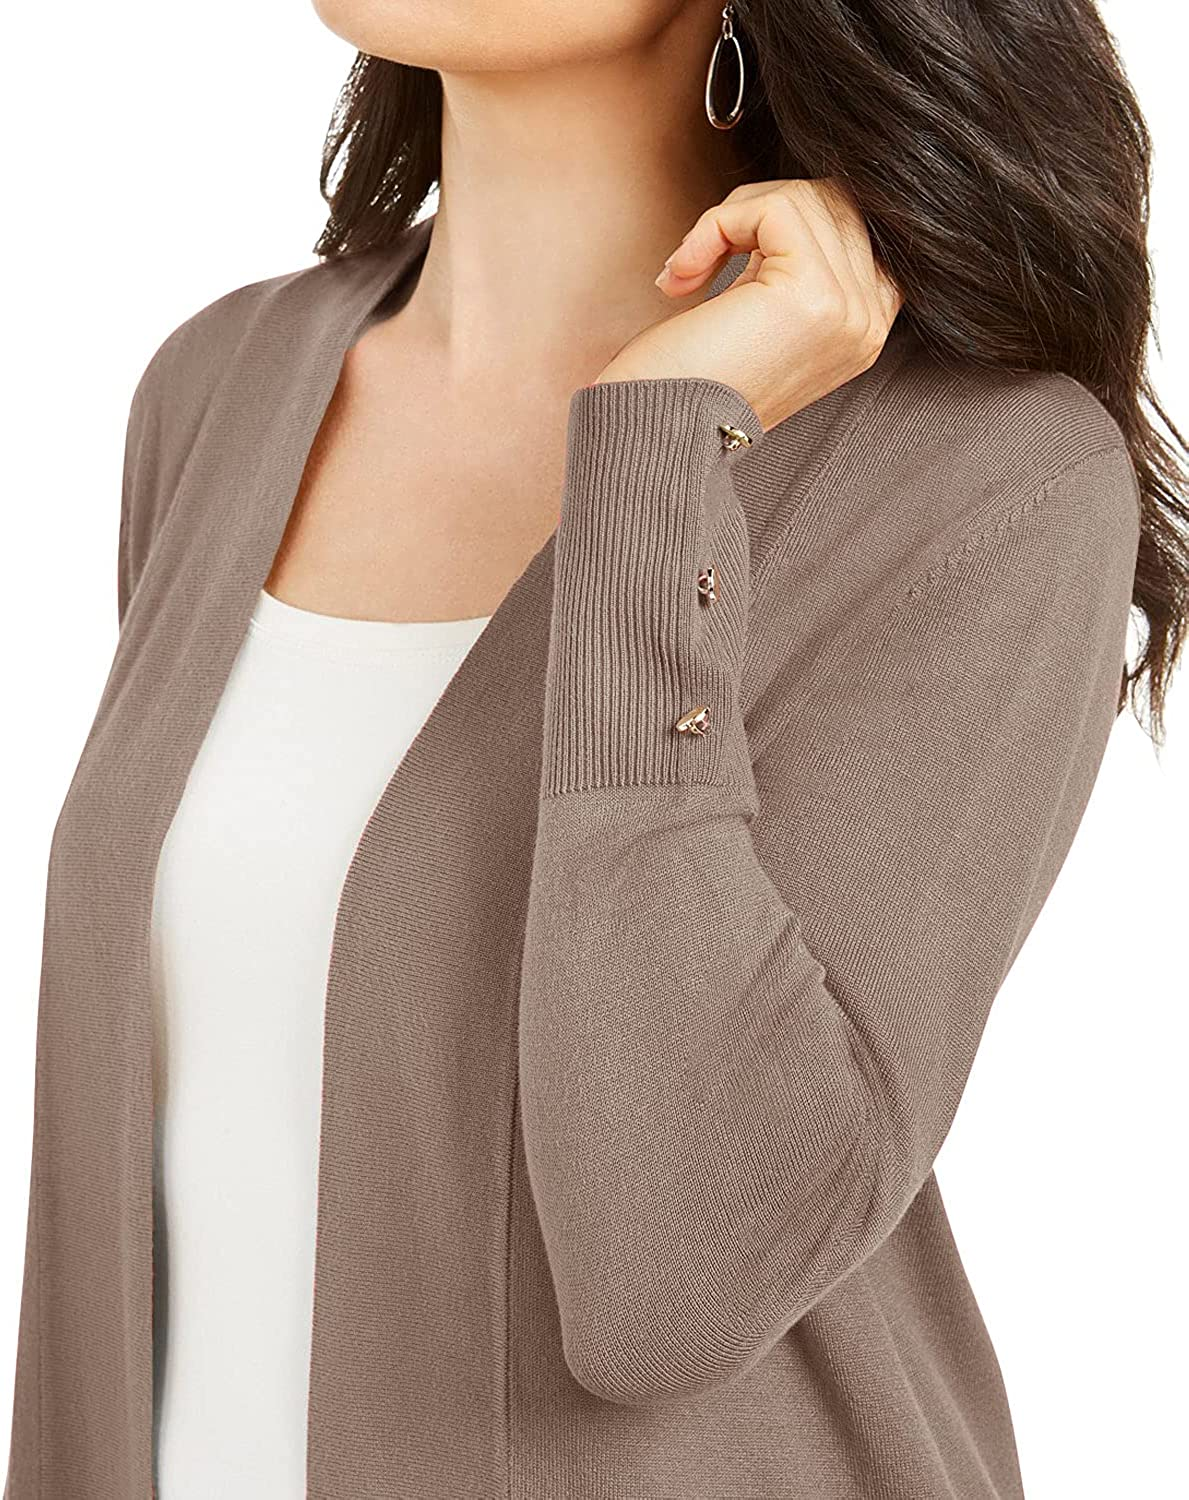 Women's Casual Long Sleeve Sweater Open Front Solid Color Pocket Cardigan Outwear with Cufflinks